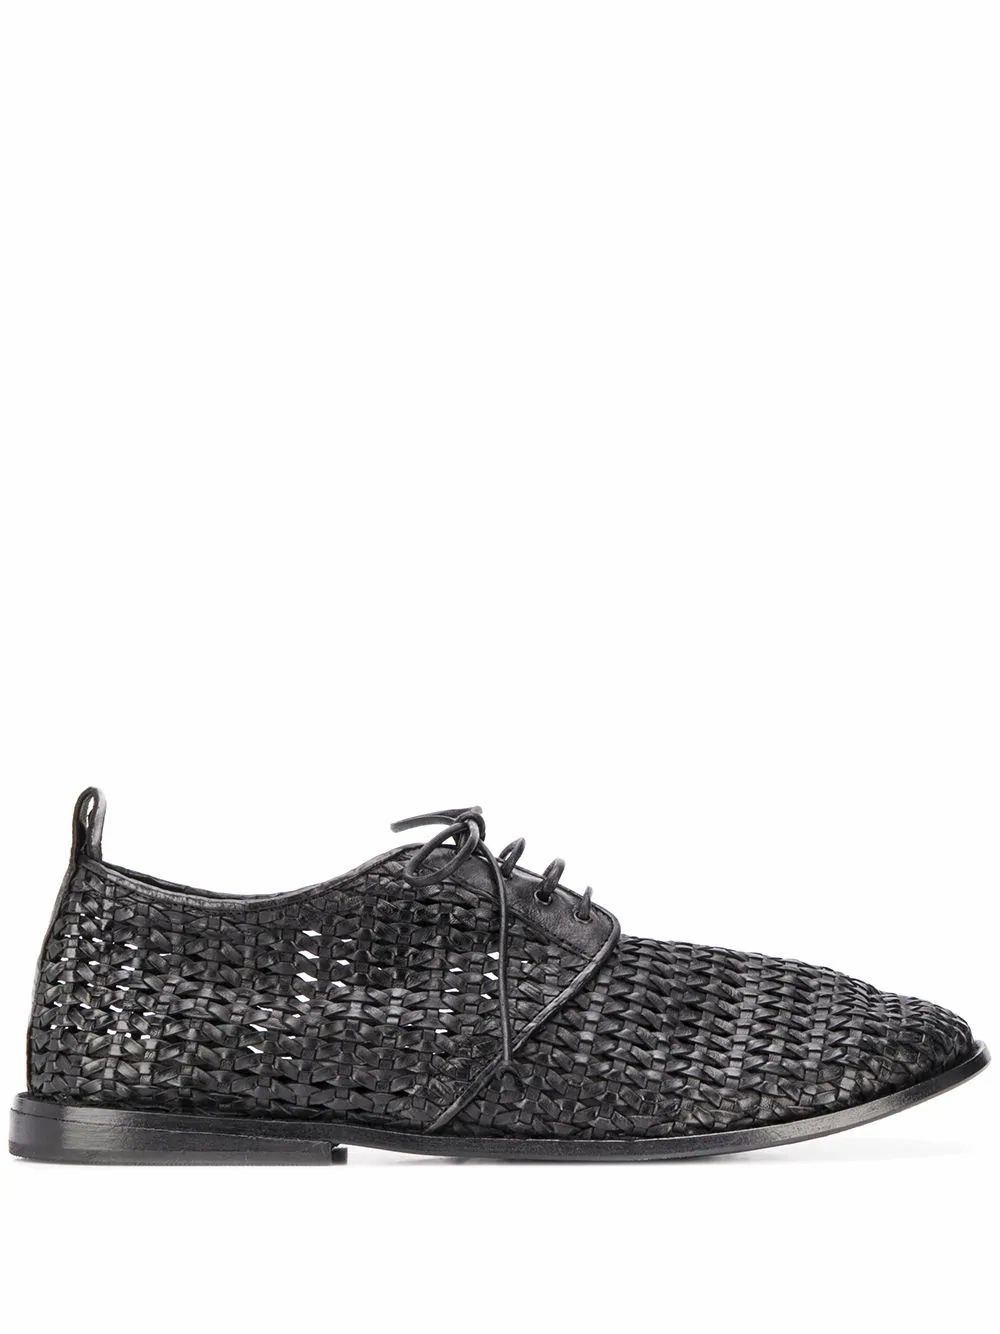 Marsèll MARSELL MEN'S BLACK LEATHER LACE-UP SHOES